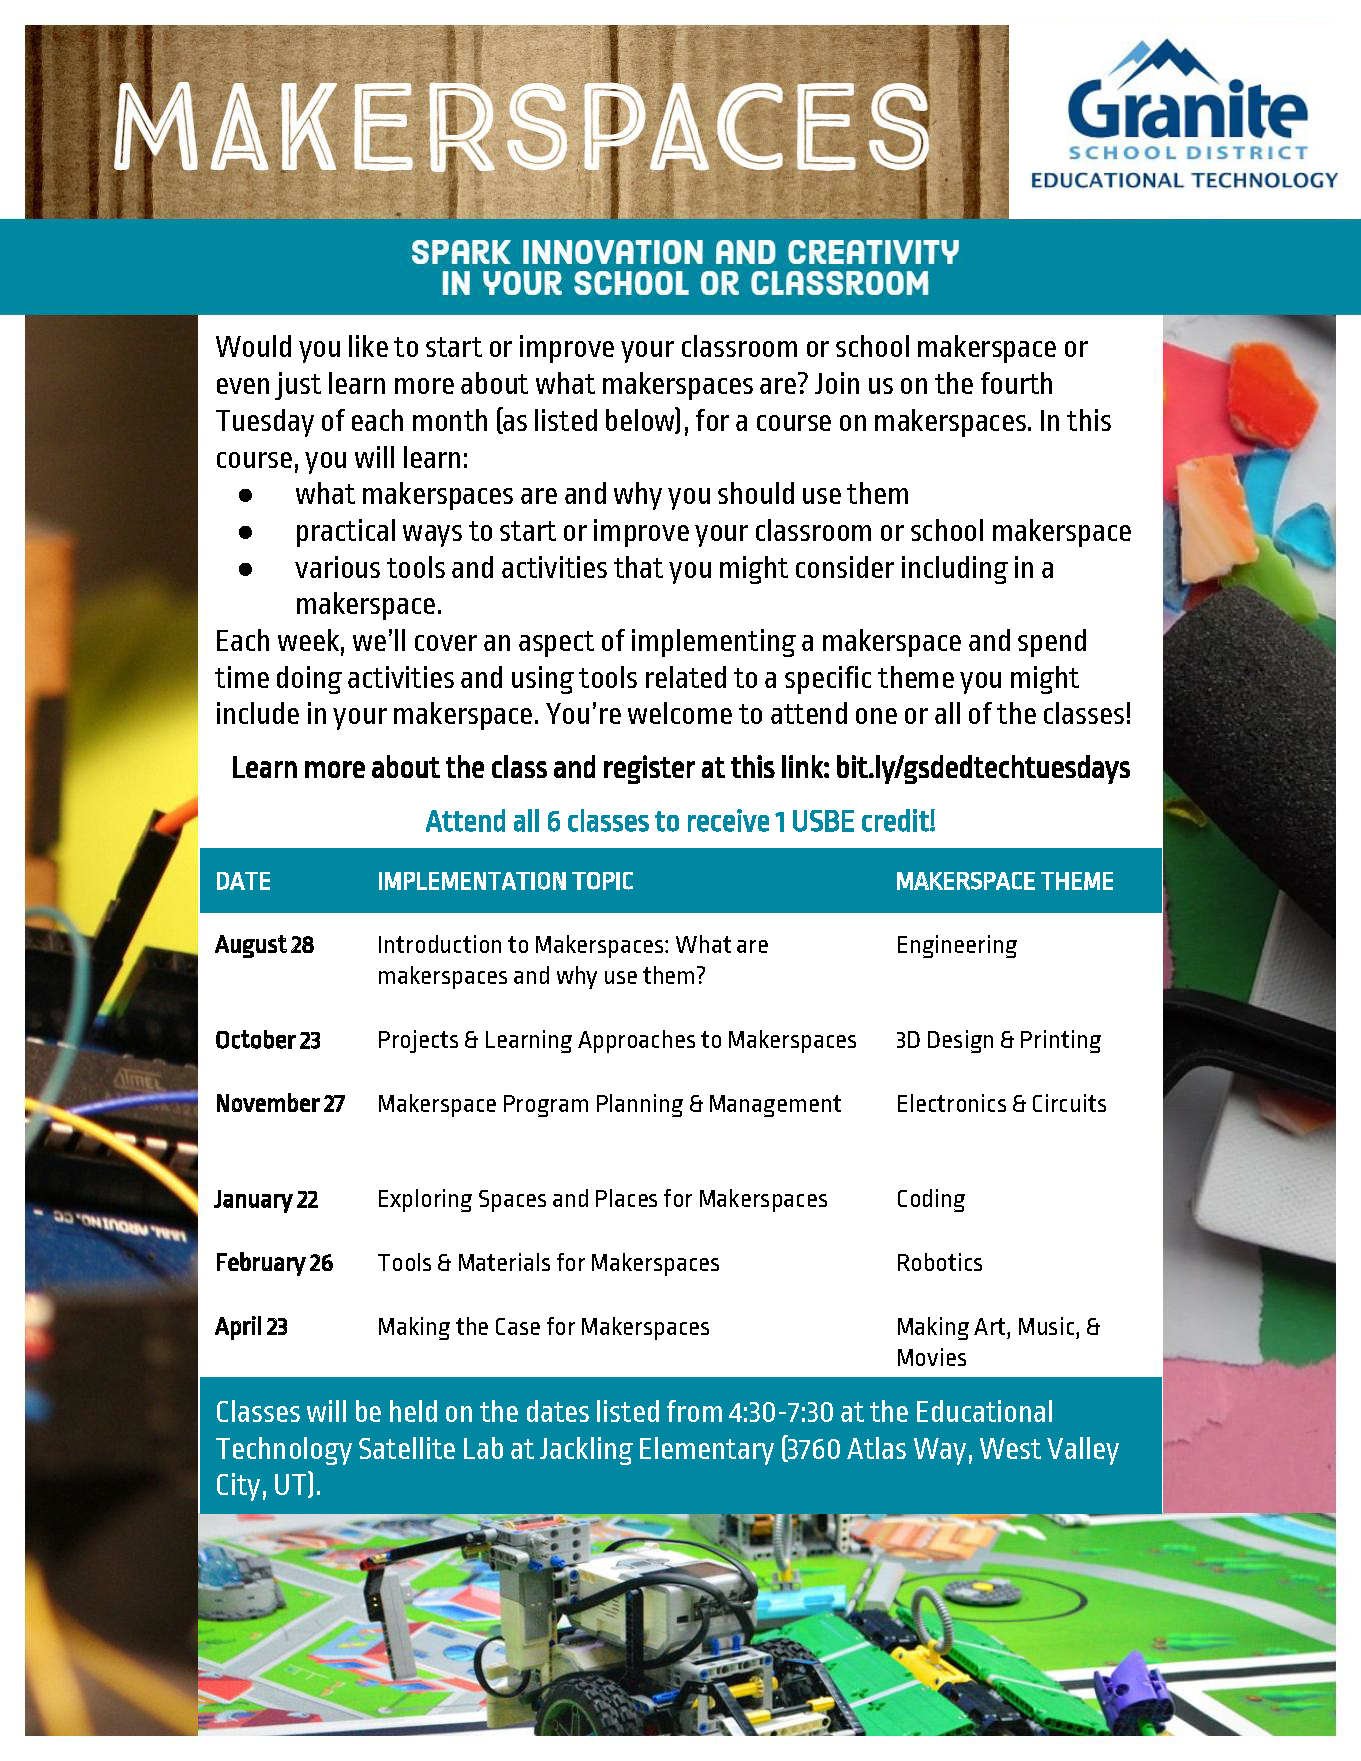 Tech Tuesday Flyer 2018-2019 - Makerspaces